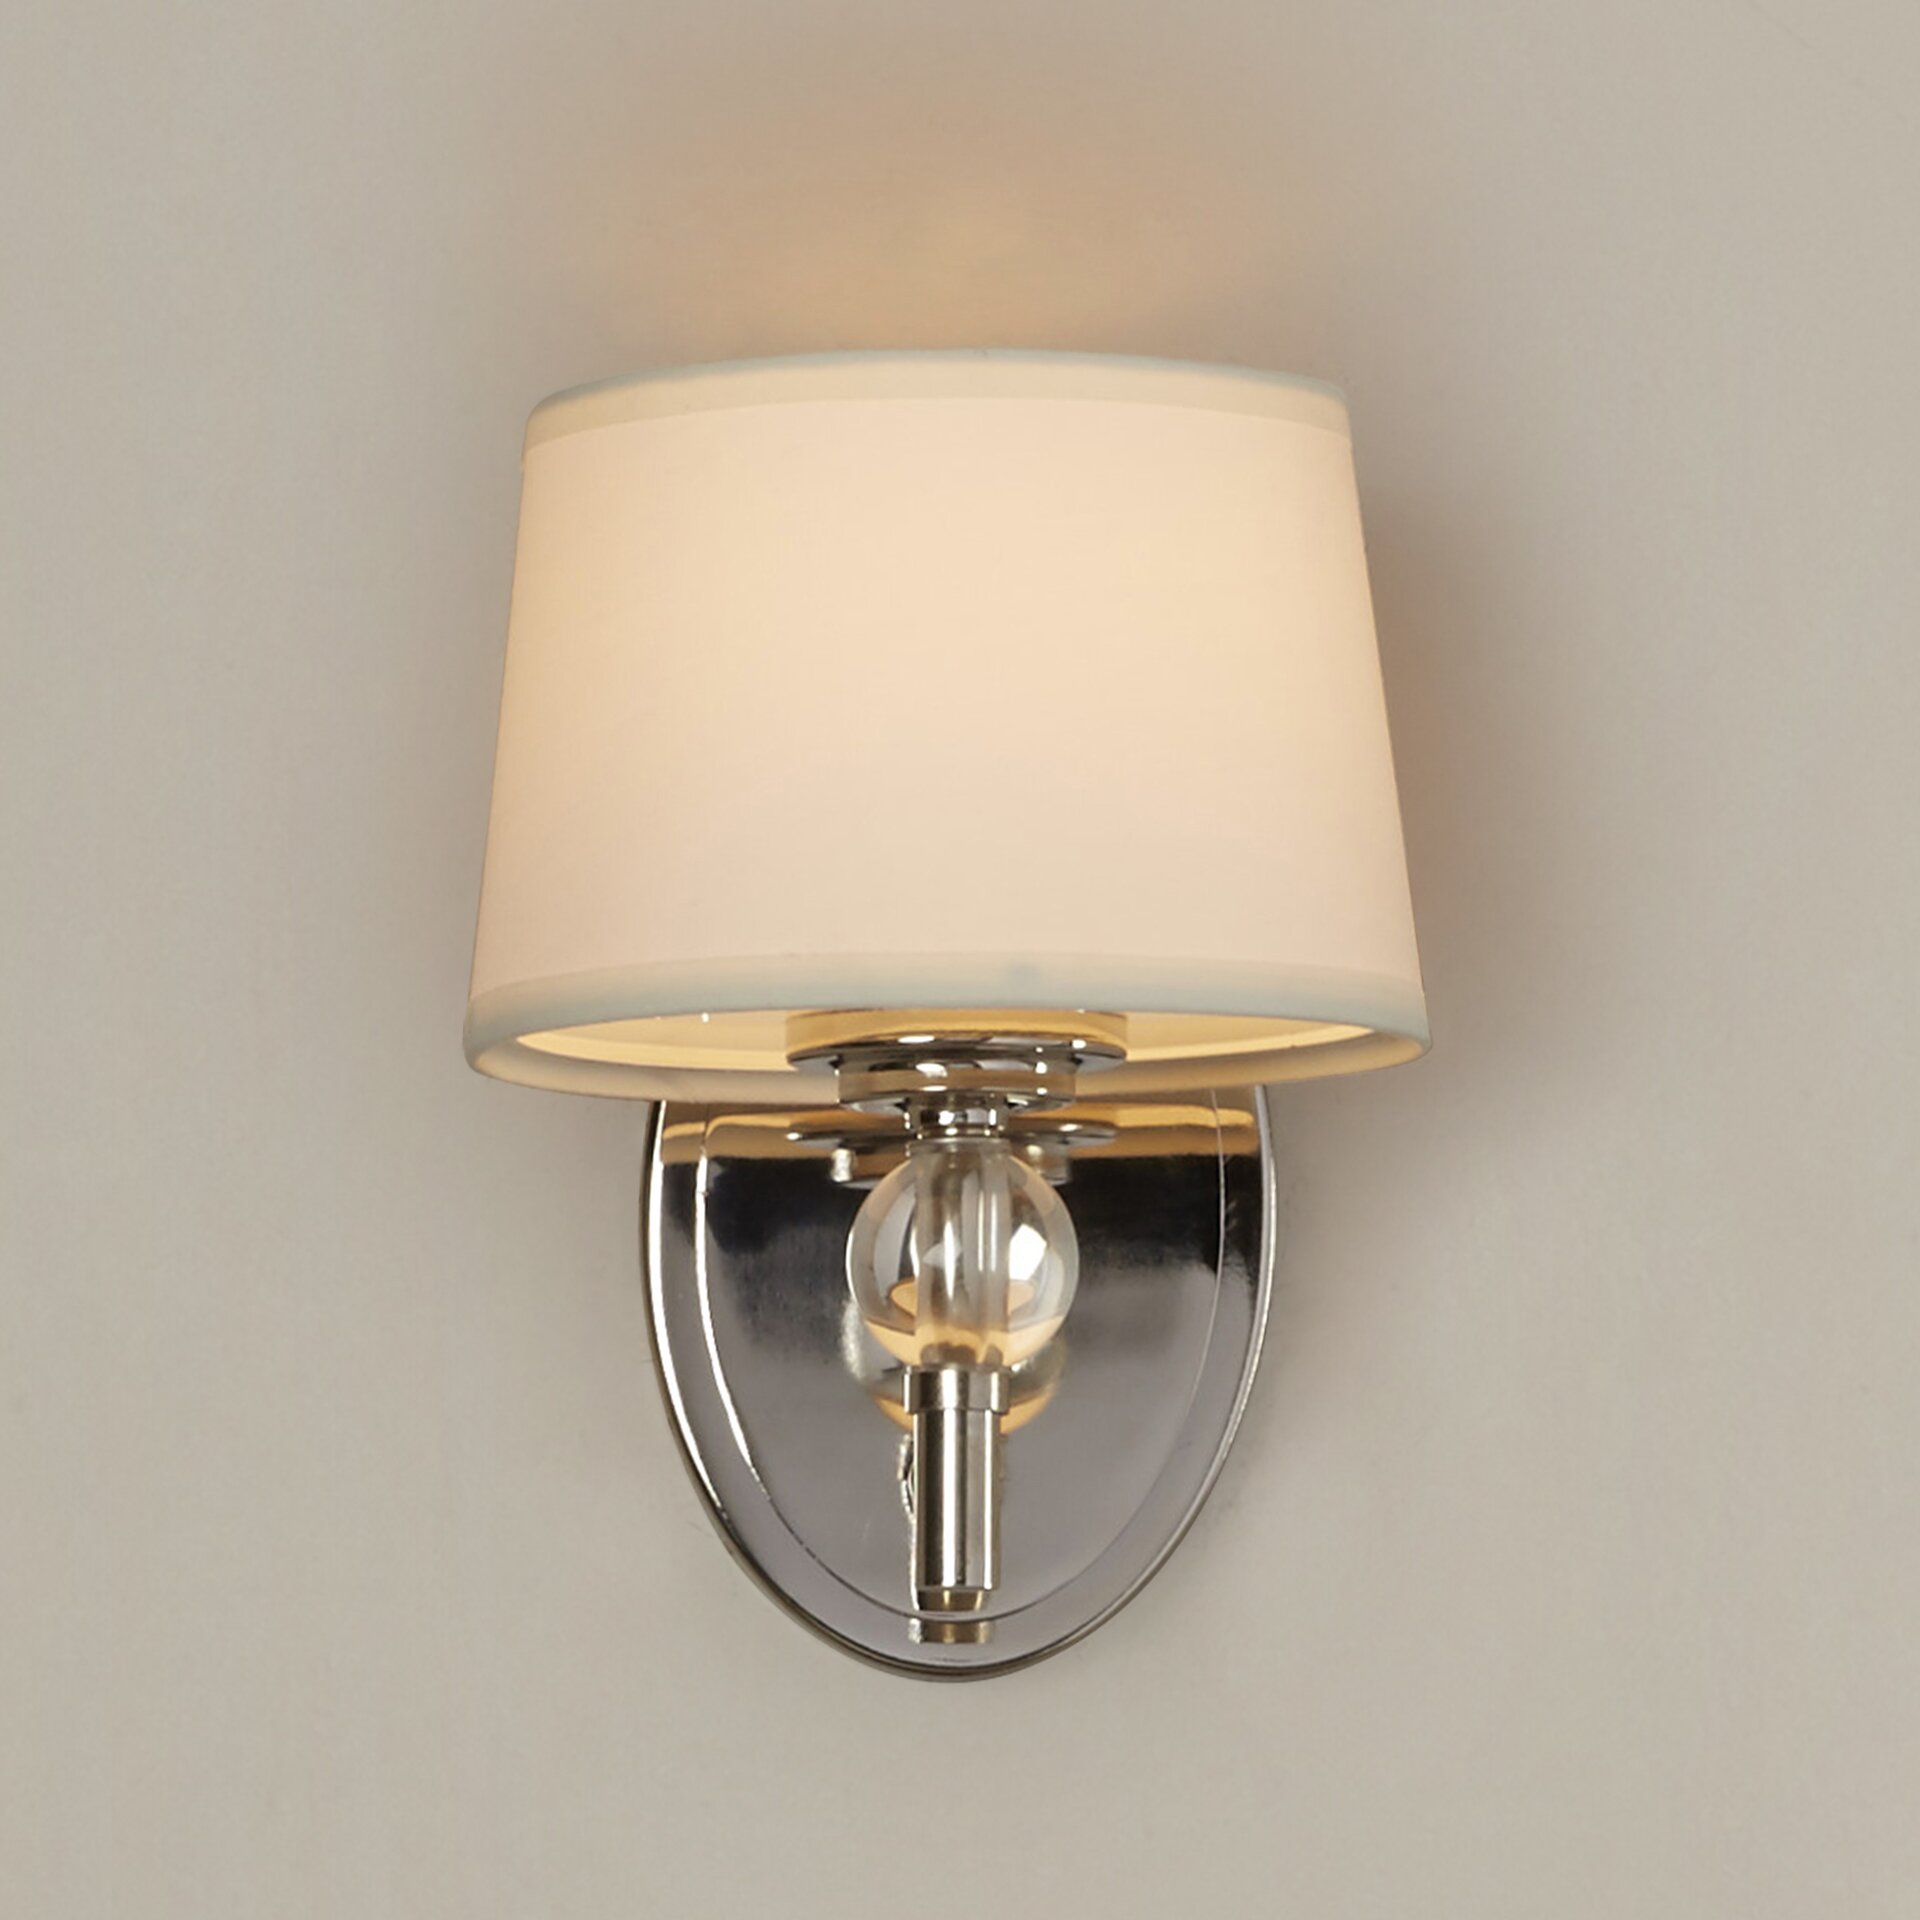 Wall Sconce With Crystal Ball : House of Hampton Gus Crystal Ball 1-Light Wall Sconce & Reviews Wayfair